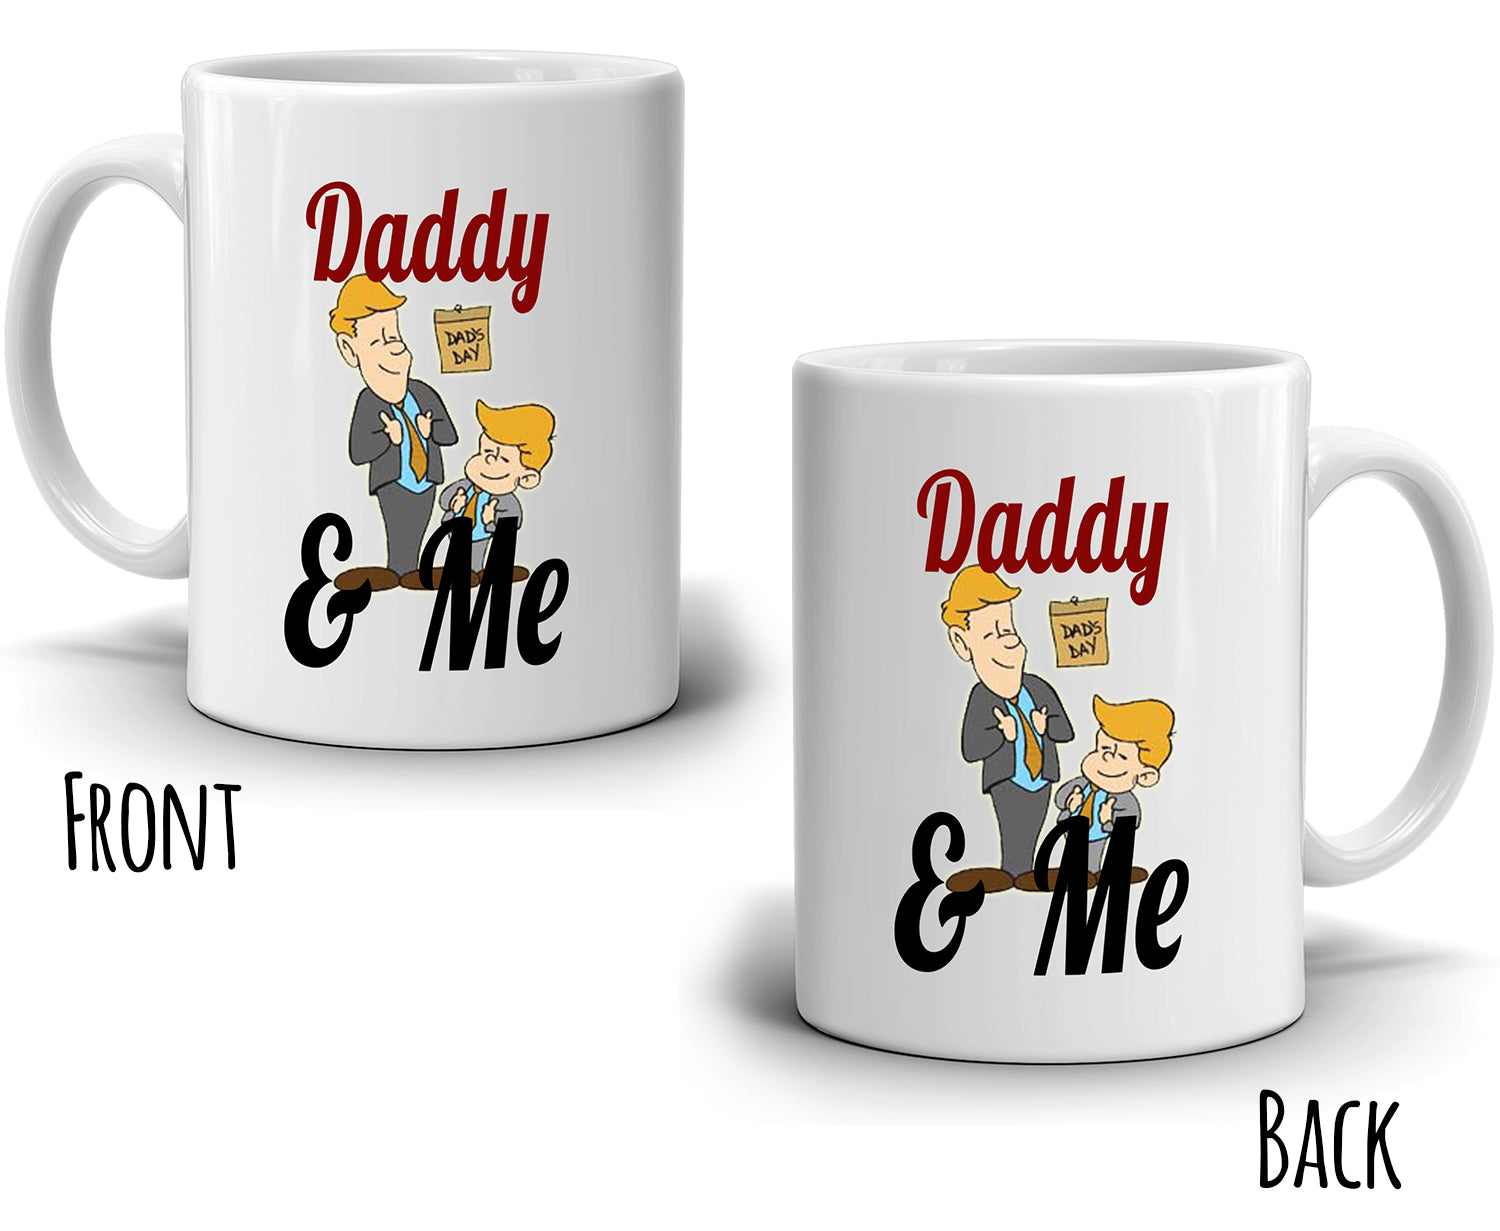 best fathers and son gifts mug daddy and me coffee cup printed on bot stir crazy gifts. Black Bedroom Furniture Sets. Home Design Ideas